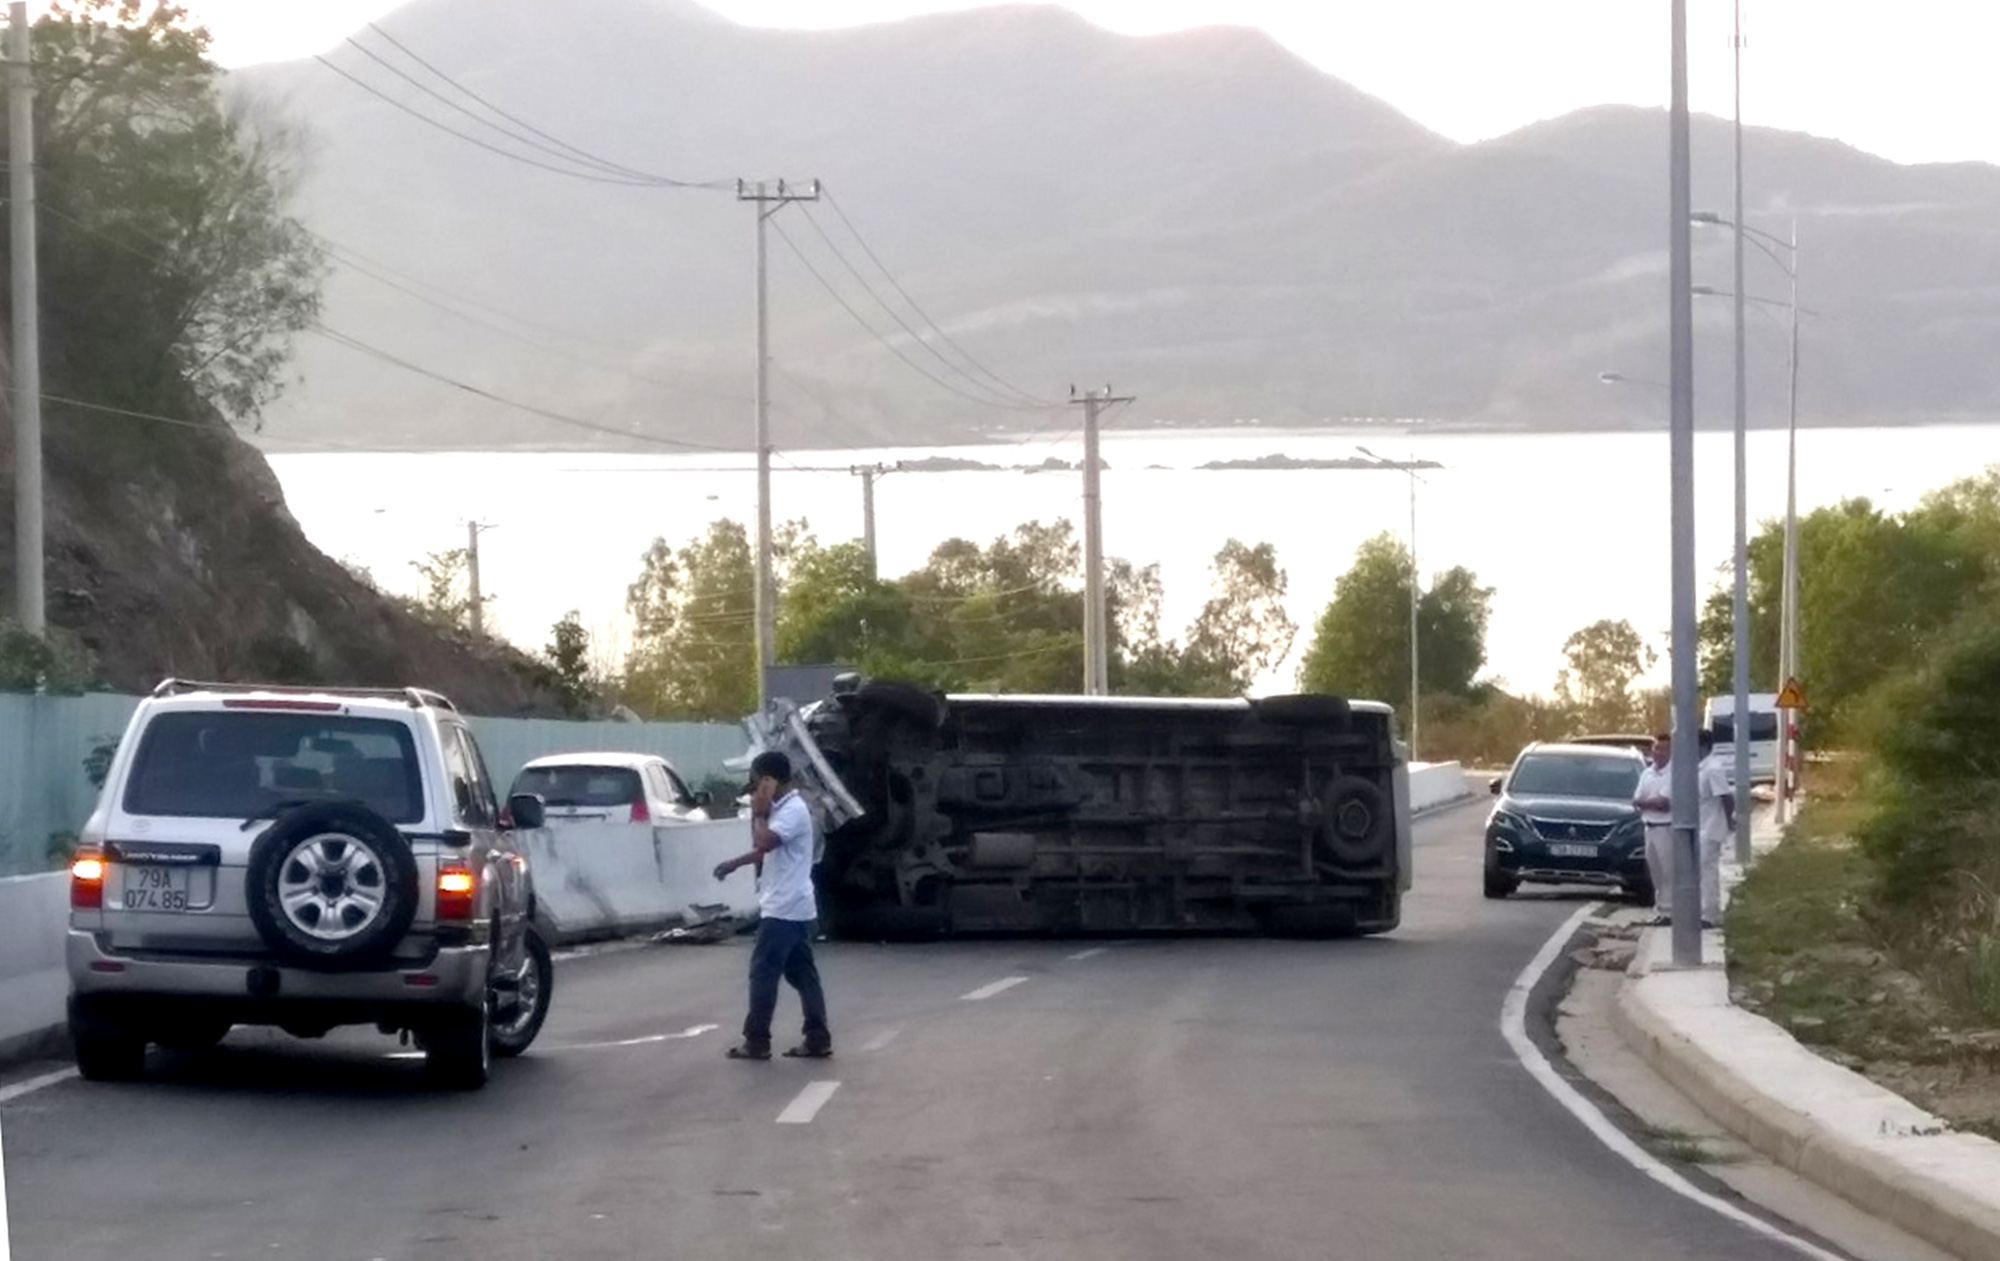 A 16-seat passenger van is on its side after hitting a concrete divider on the Cu Hin mountain pass in Nha Trang City, Khanh Hoa Province, Vietnam, August 30, 2020. Photo: Phan Song Ngan / Tuoi Tre